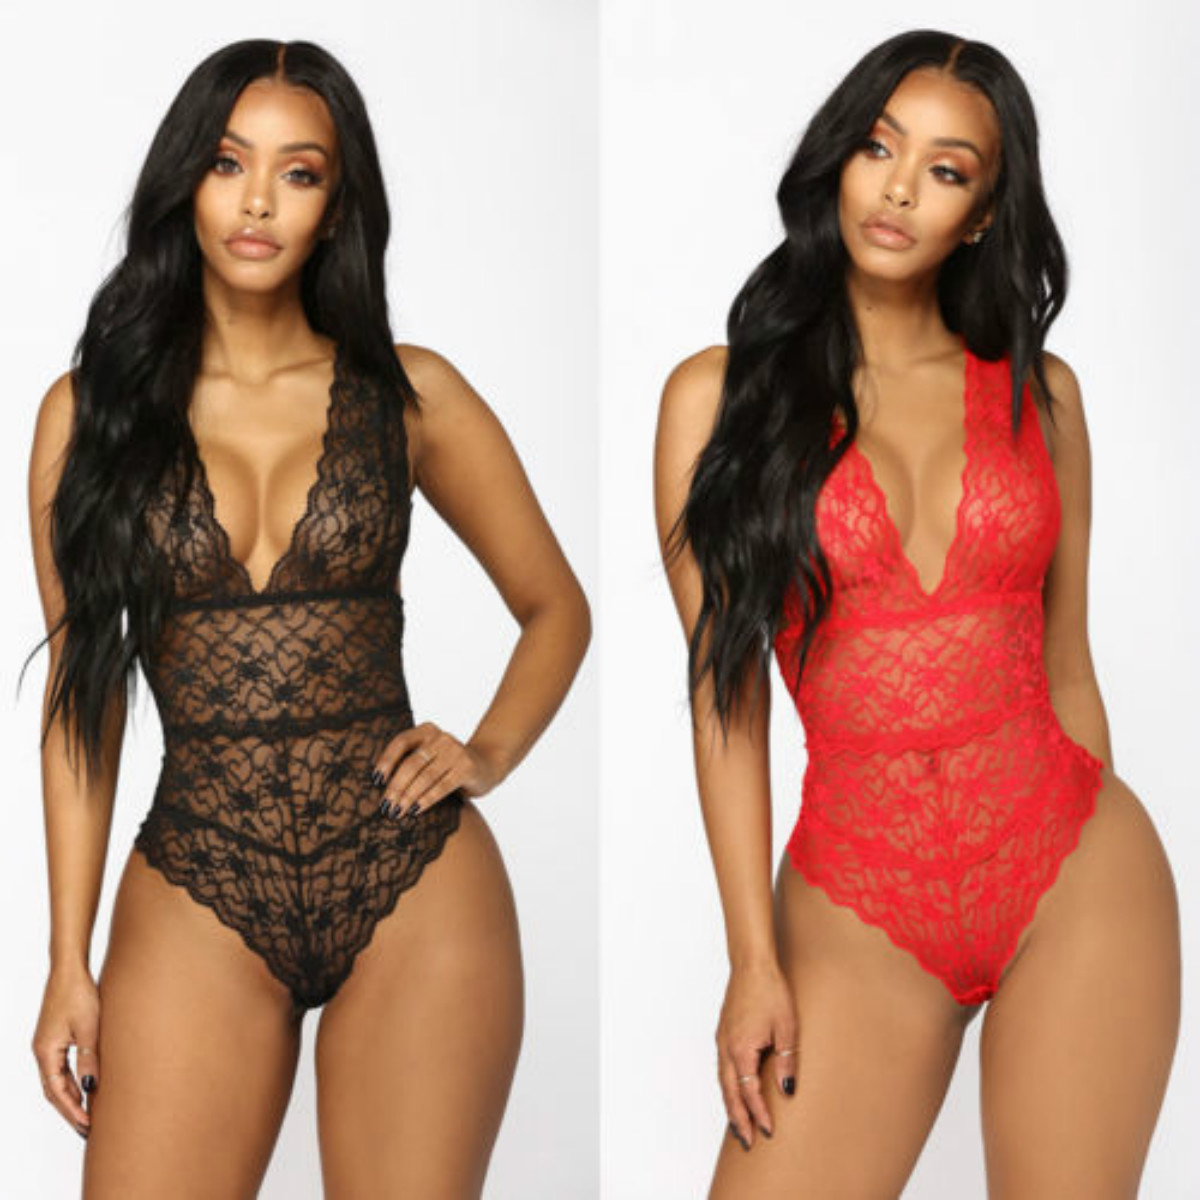 59b8e8a81578 Detail Feedback Questions about Women Sexy Lingerie Lace Romers V Neck 2018  G string Underwear Babydoll Playsuit Sleepwear Sets on Aliexpress.com |  alibaba ...